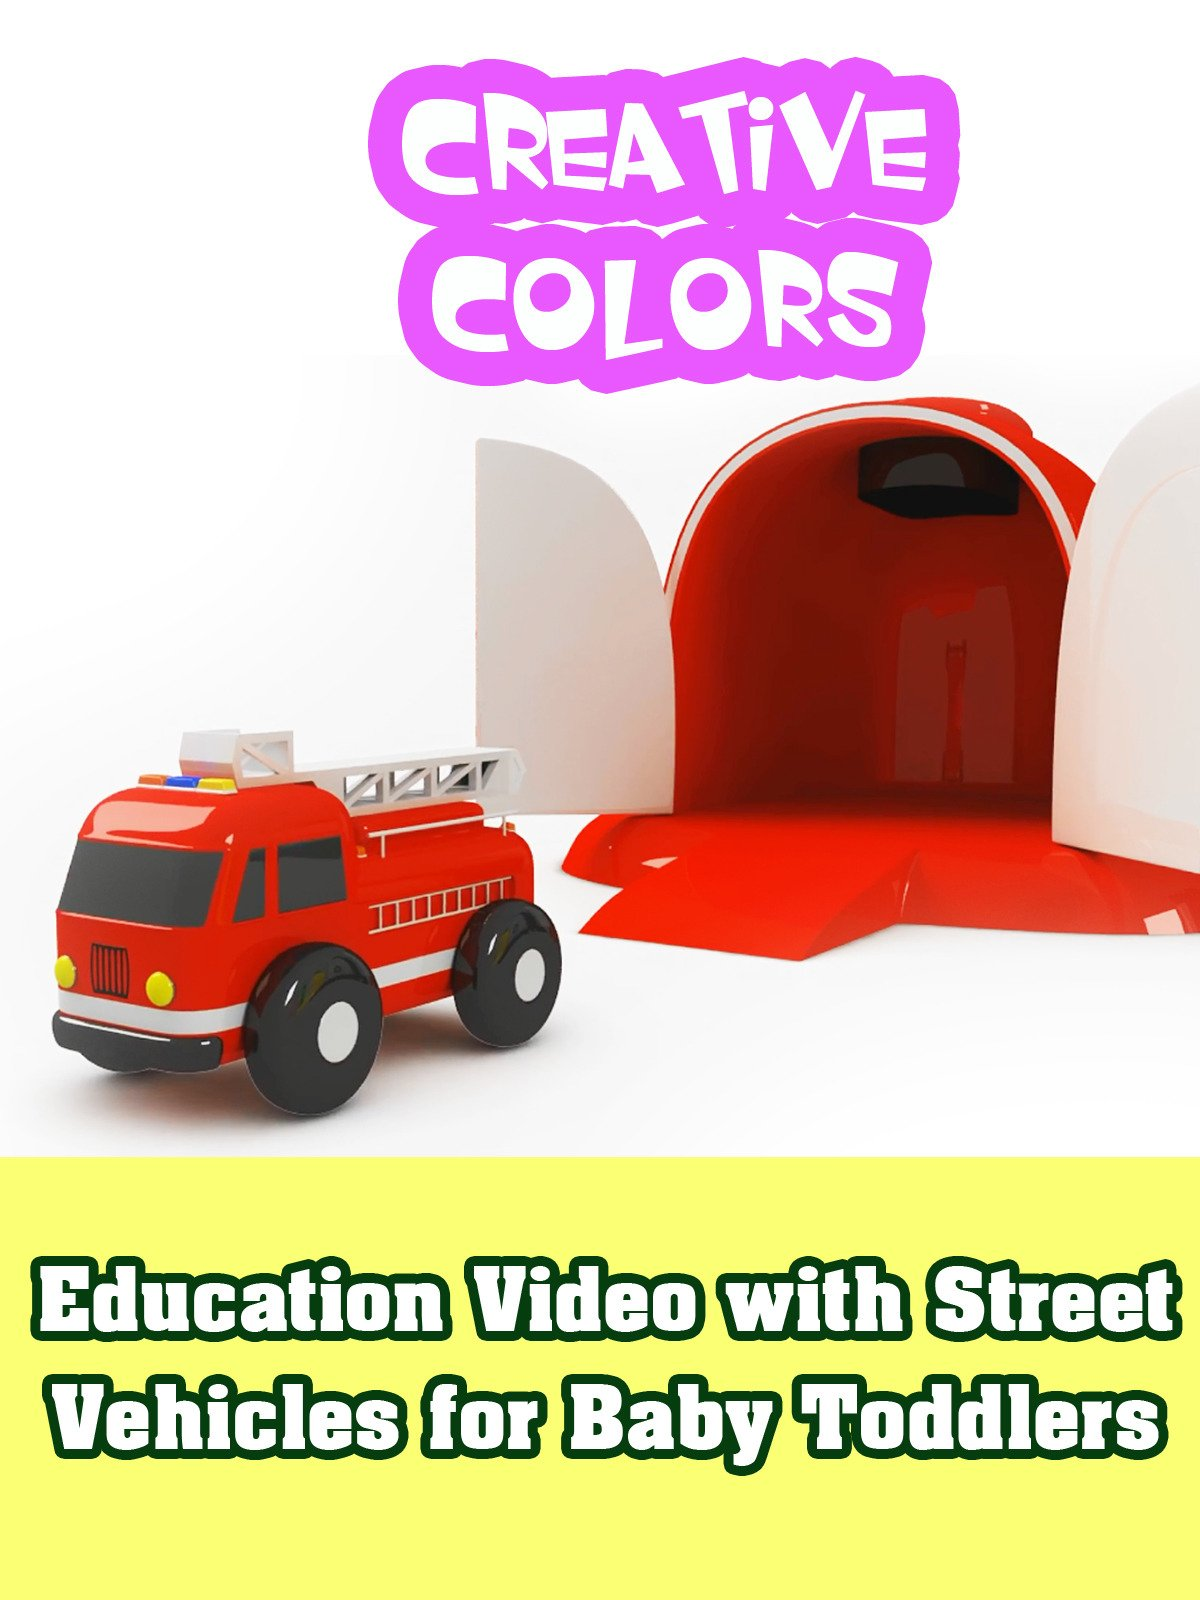 Education Video with Street Vehicles for Baby Toddlers